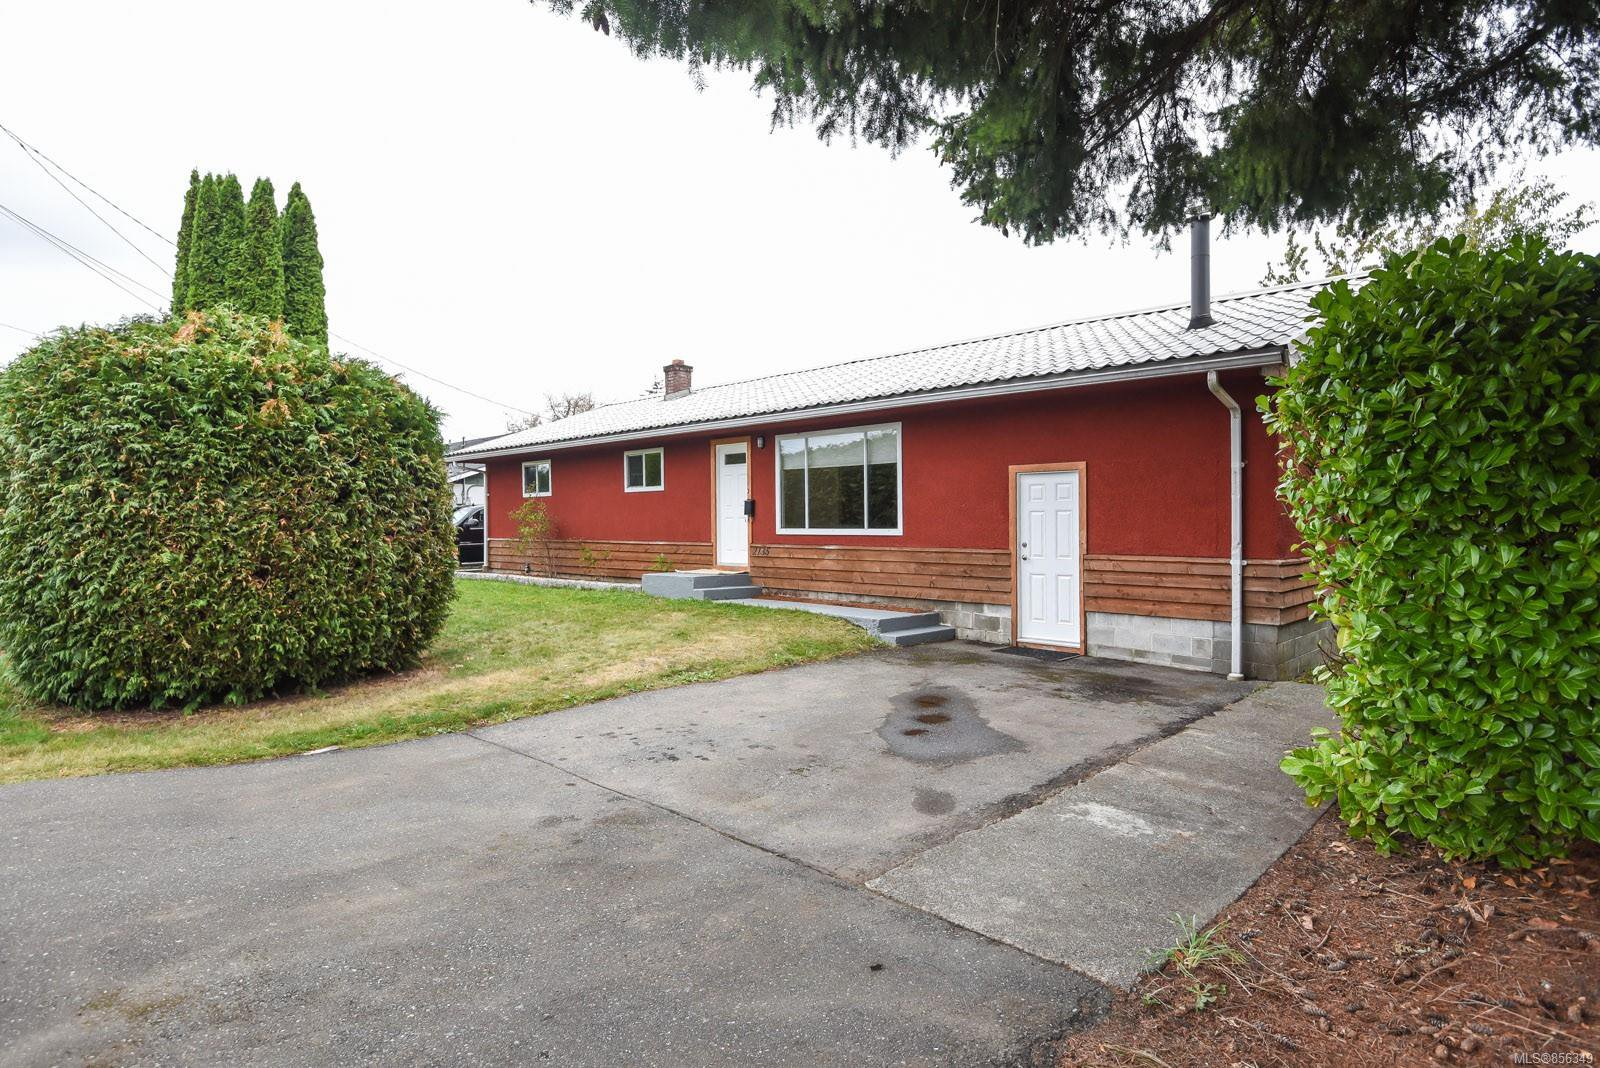 Main Photo: 2135 Willemar Ave in : CV Courtenay City House for sale (Comox Valley)  : MLS®# 856349